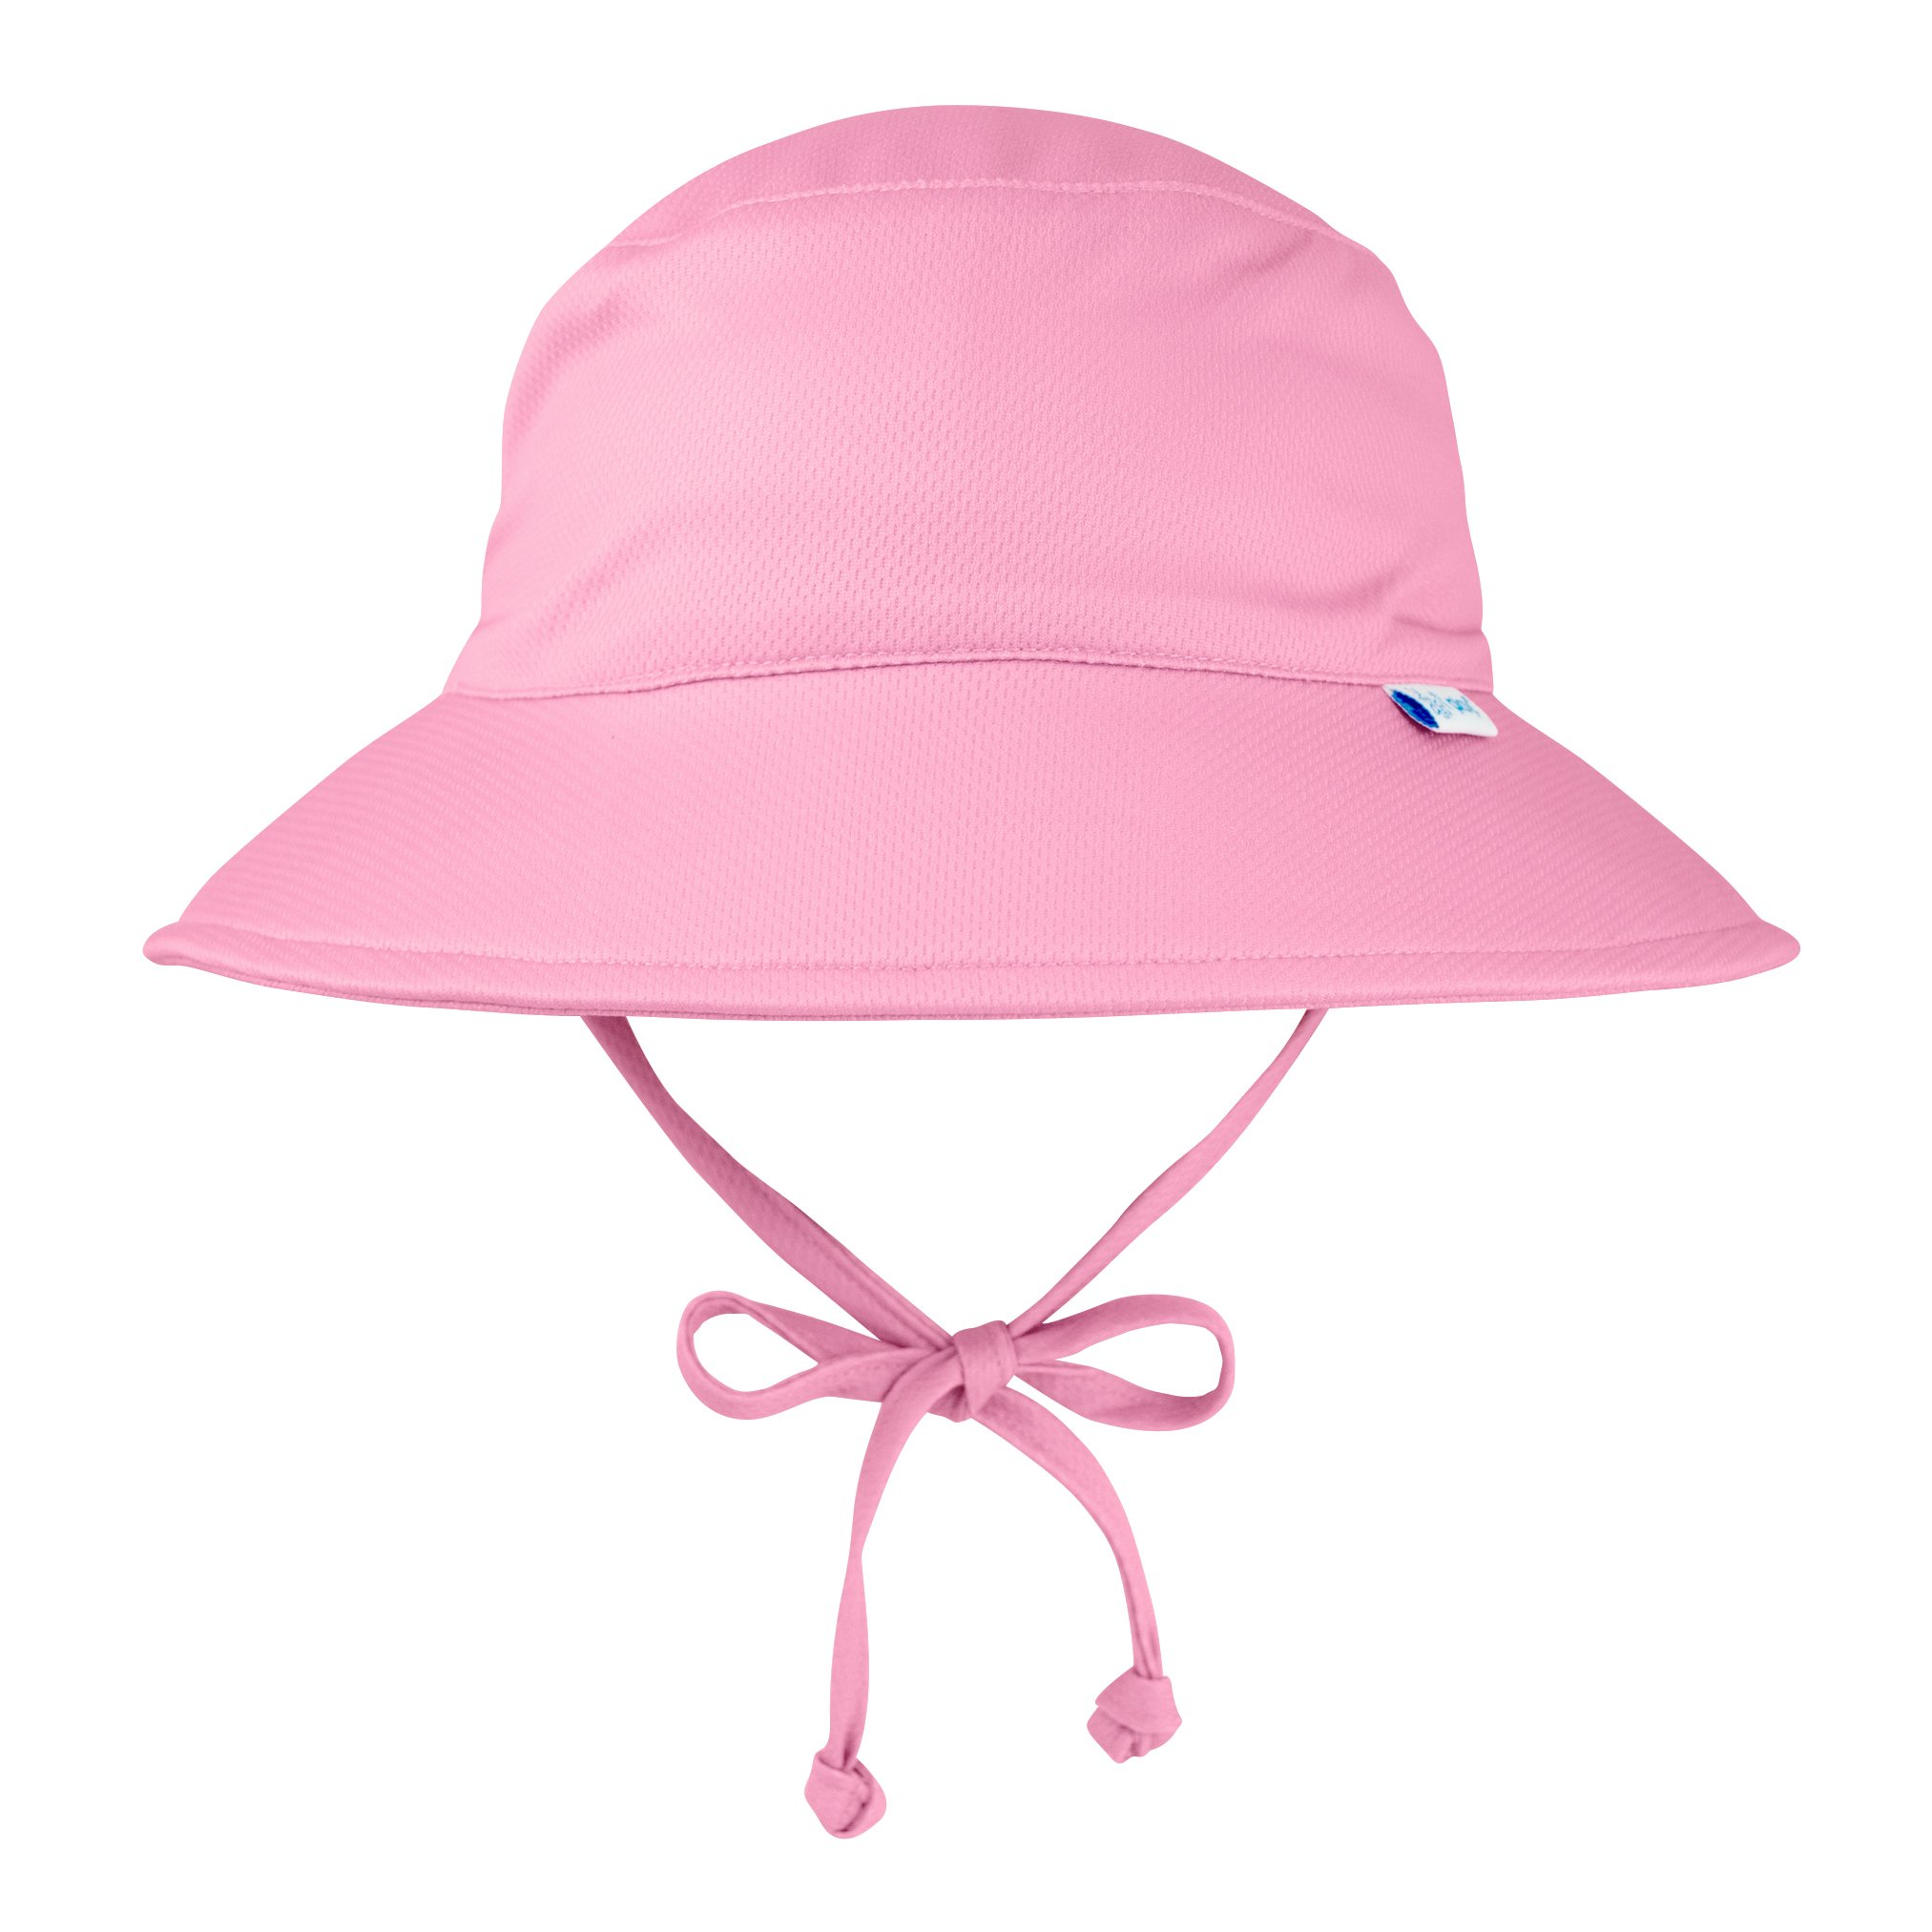 i play. Kids' Baby Girls Breatheasy Bucket Sun Protection Hat, Light Pink, 0/6mo by i play.